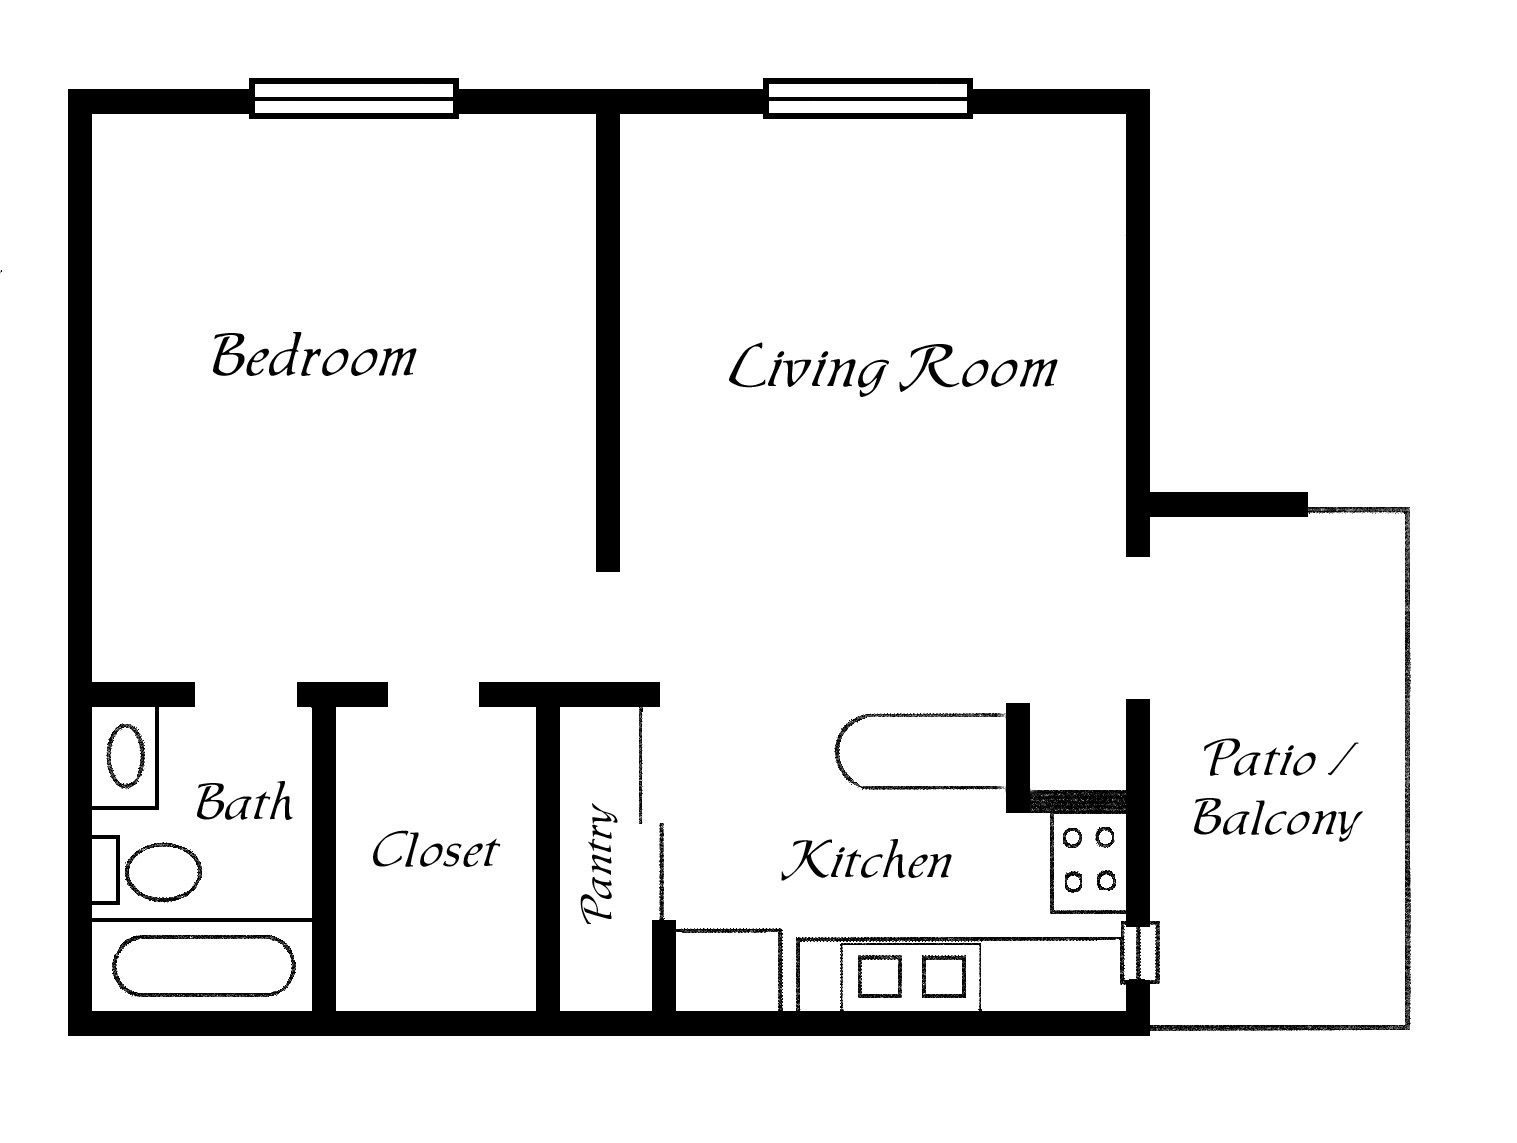 Basic Floor Plans For Homes Simple